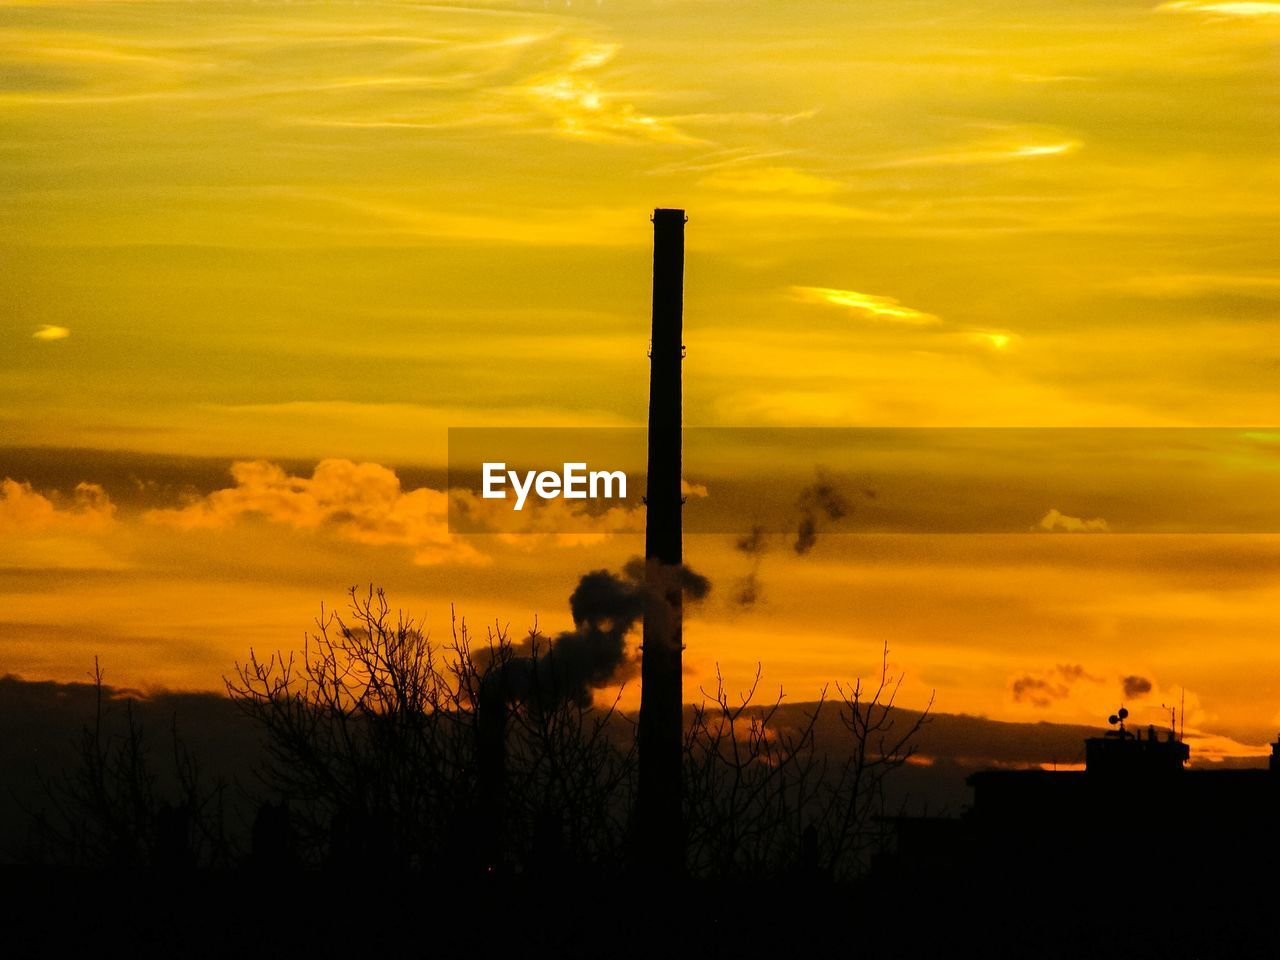 sunset, silhouette, orange color, industry, sky, yellow, factory, no people, cloud - sky, nature, scenics, smoke stack, outdoors, beauty in nature, chimney, plant